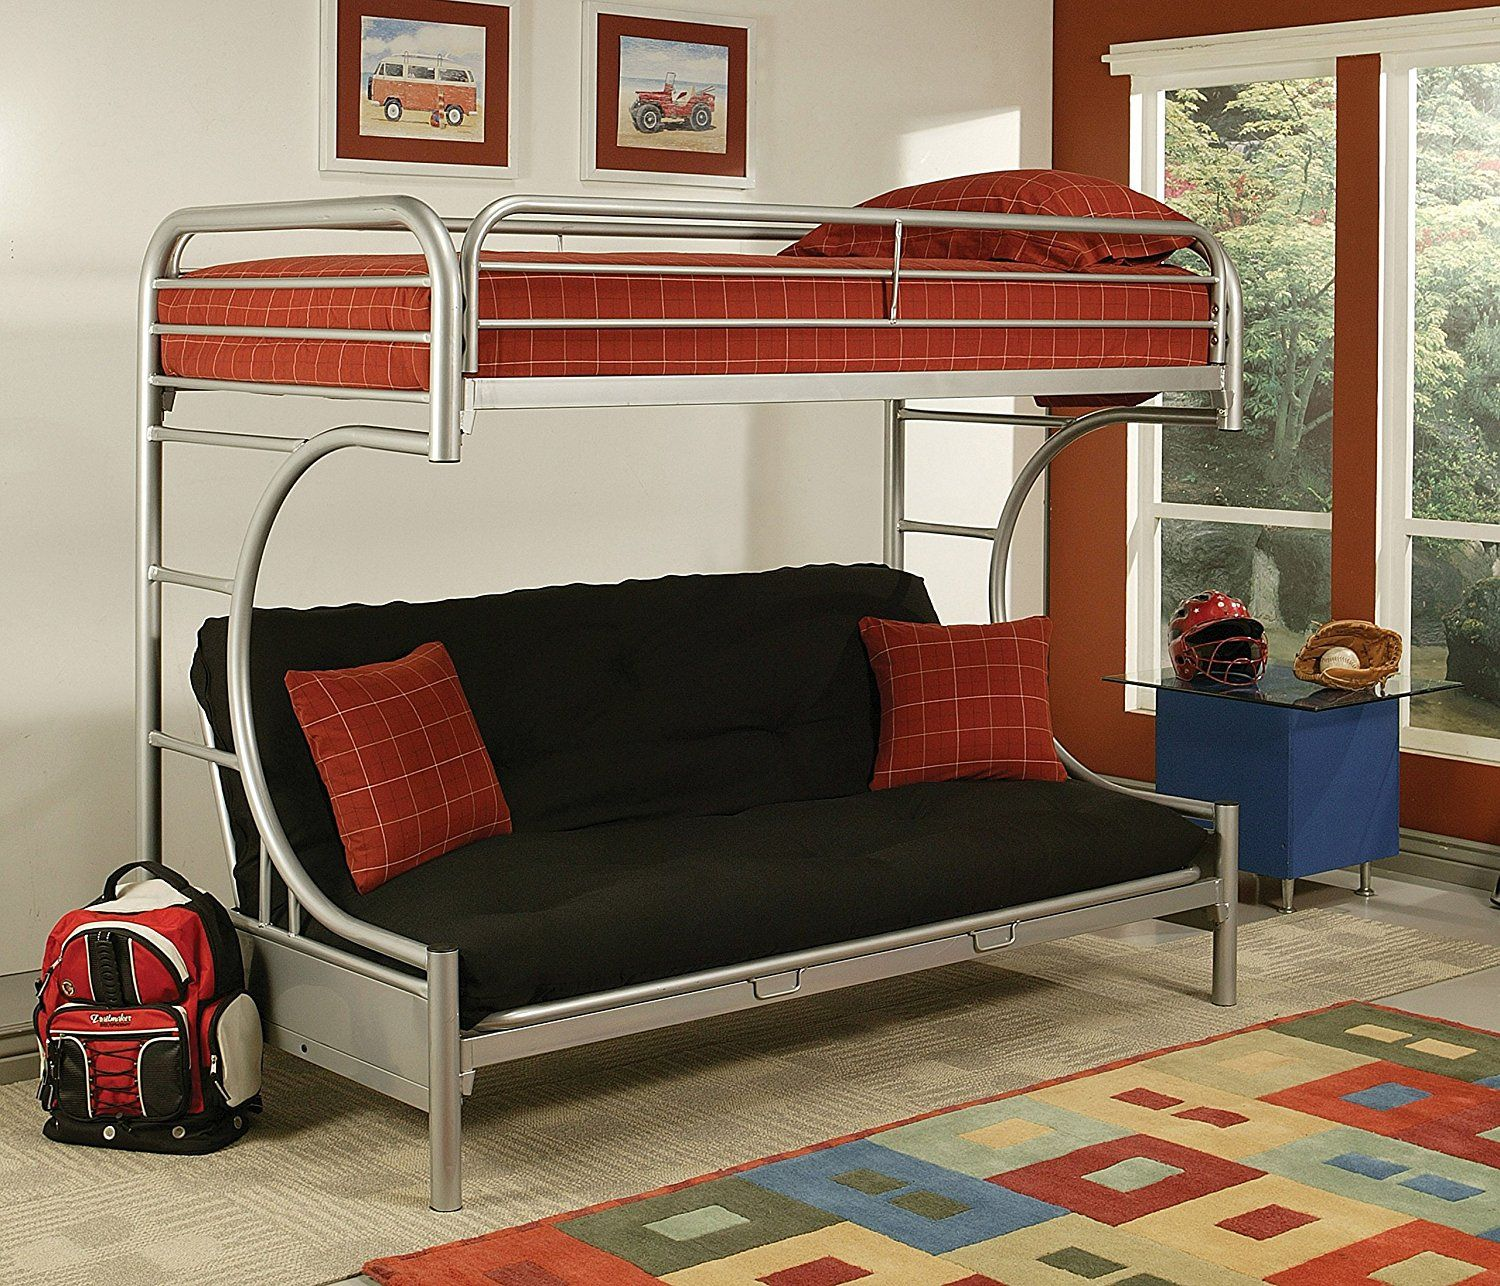 Pin By Neby On Bedroom Apartments Ideas Pinterest Futon Bunk Bed